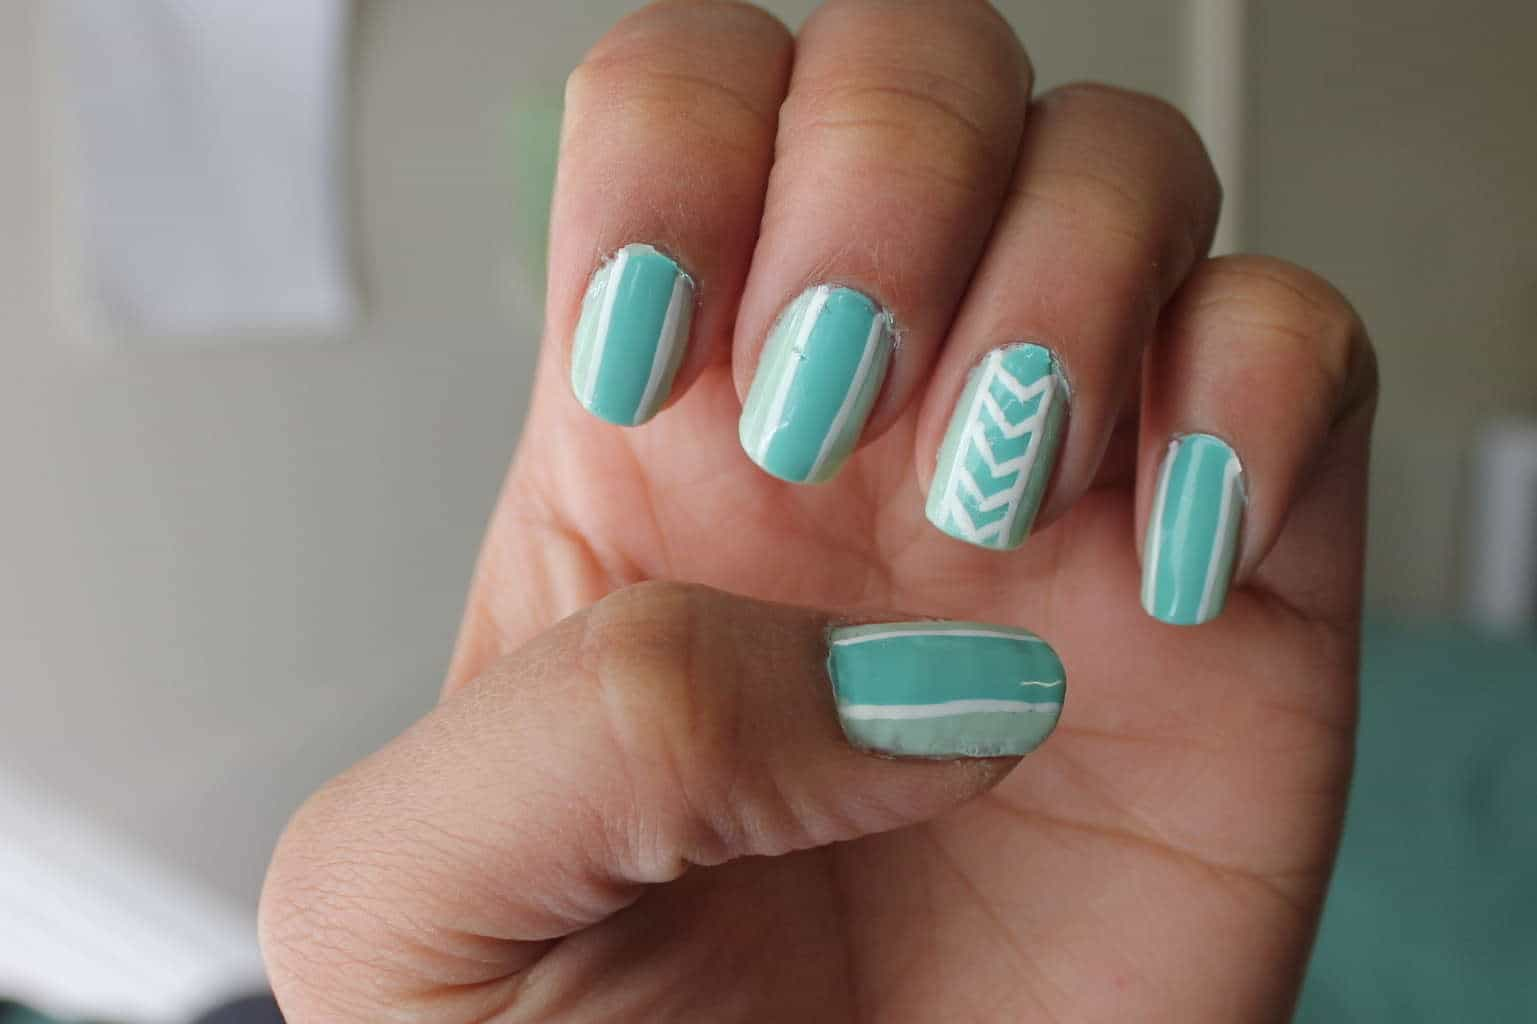 Teal Line Nail Design - 20 Alluring Line Nail Designs To Try – NailDesignCode